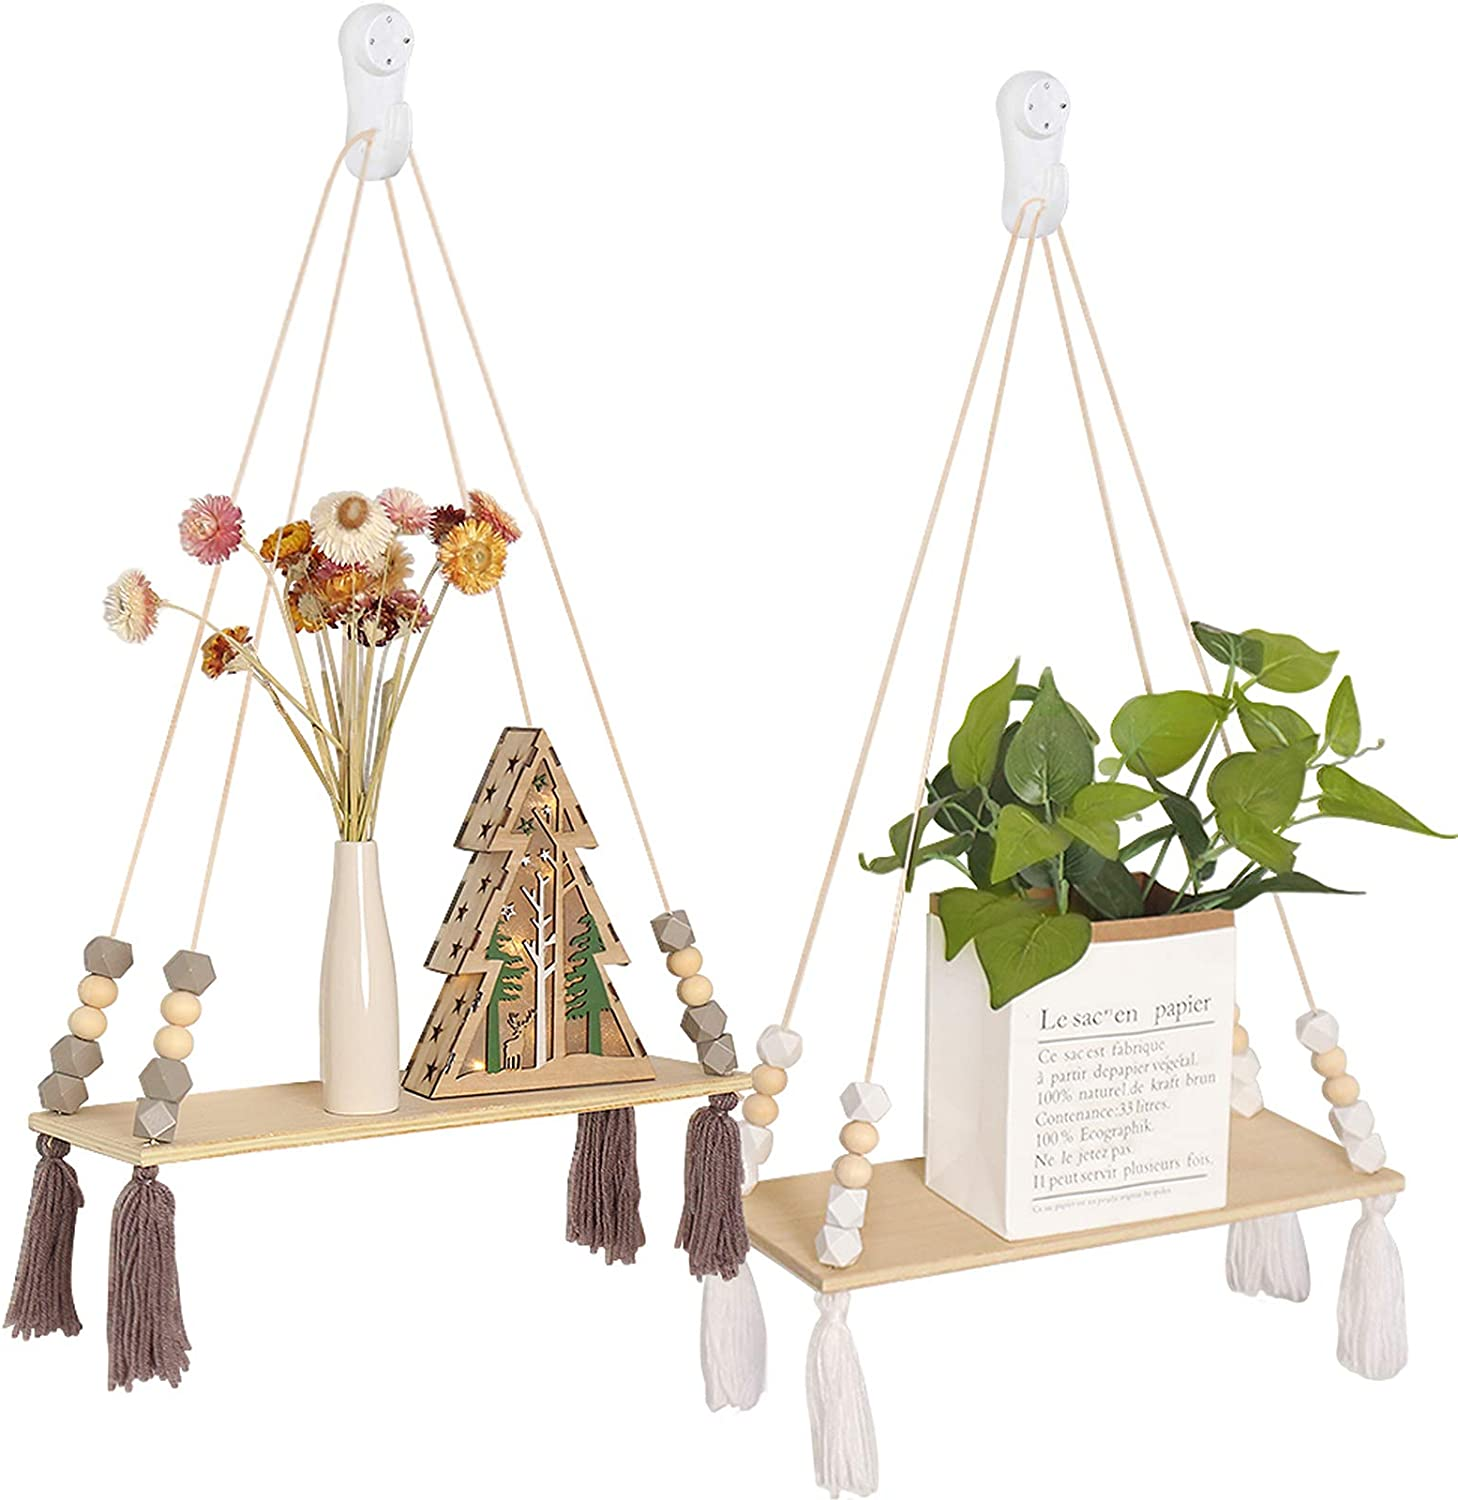 Macrame Wall Hanging Shelf Set Superior of Rope Wa Shelves Quality inspection 2 for